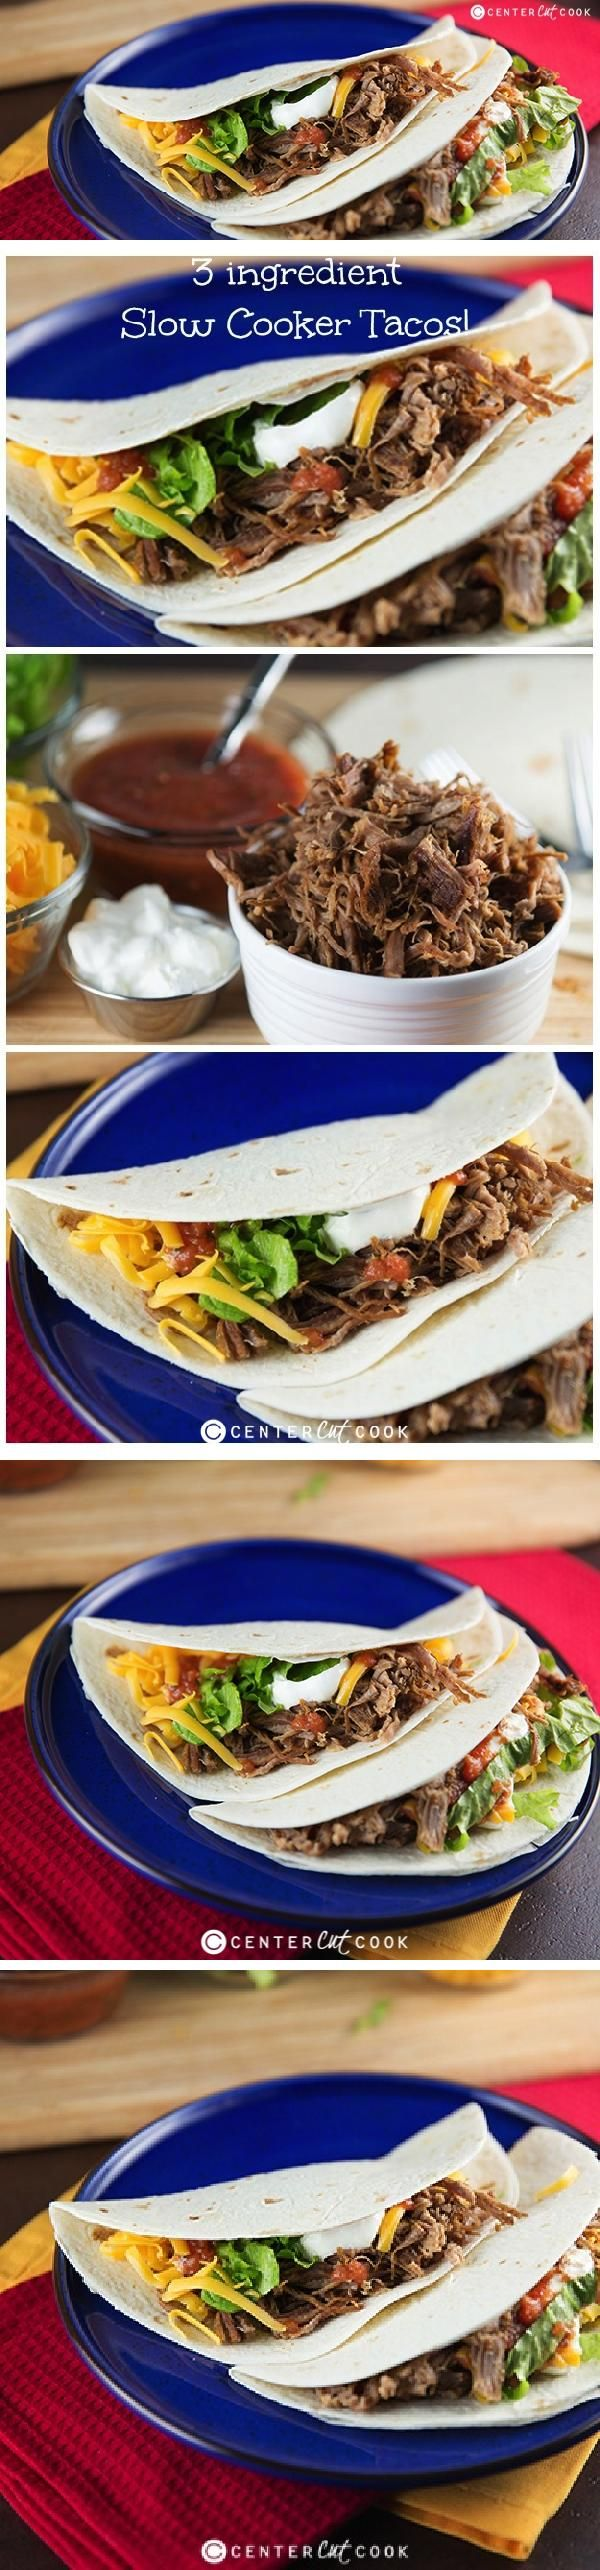 This recipe for Slow Cooker Beef Tacos couldn't get any easier! Flank steak is slow cooked in the crock pot all day long so that come diner time, you've got tender shredded beef perfect for tacos! Top with your favorite garnishes and you've got the perfect family meal.